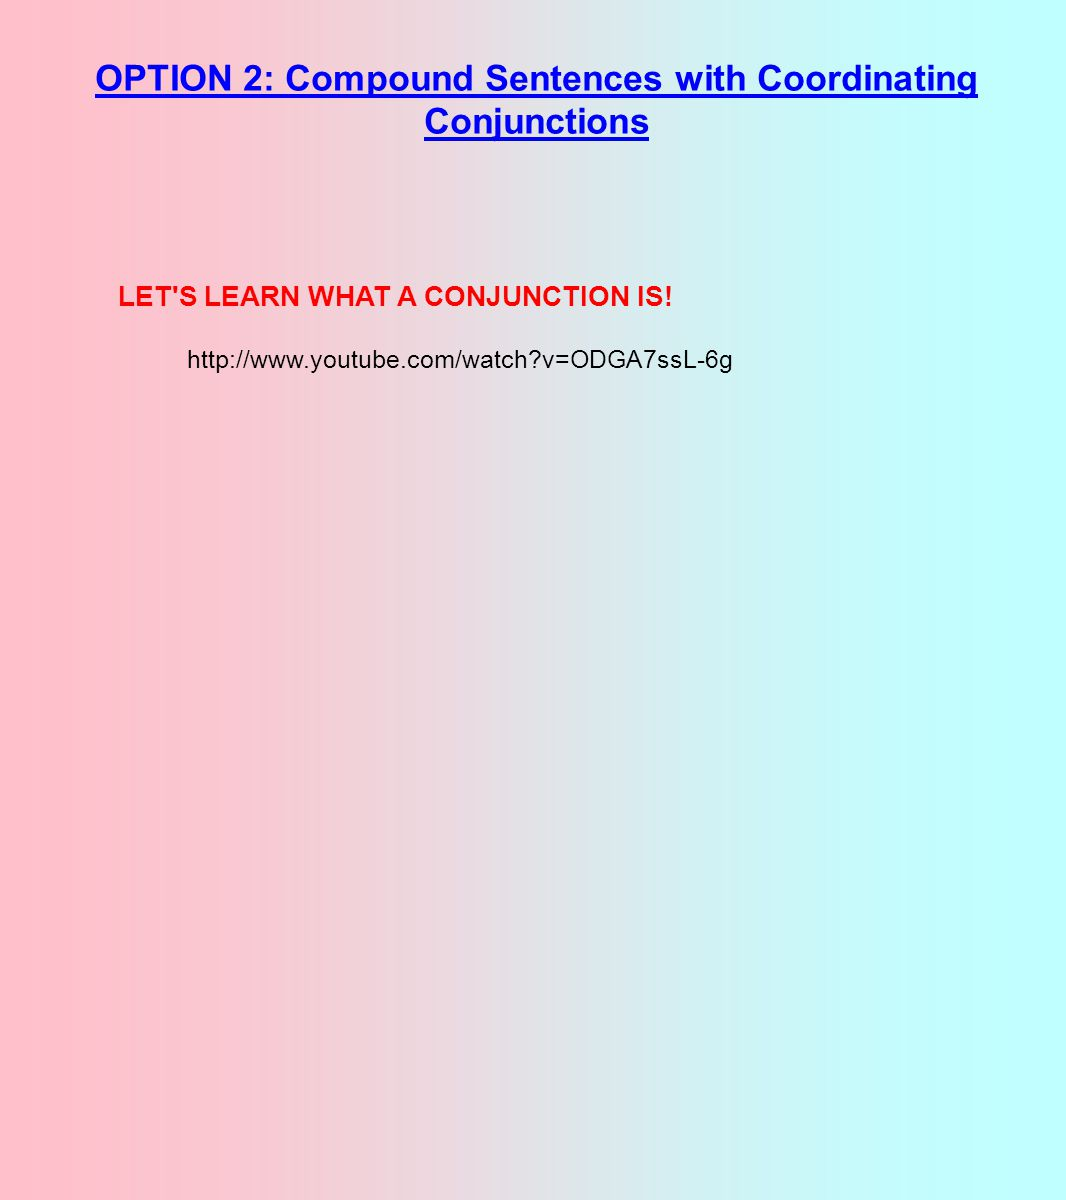 OPTION 2: Compound Sentences with Coordinating Conjunctions http://www.youtube.com/watch?v=ODGA7ssL-6g LET S LEARN WHAT A CONJUNCTION IS!